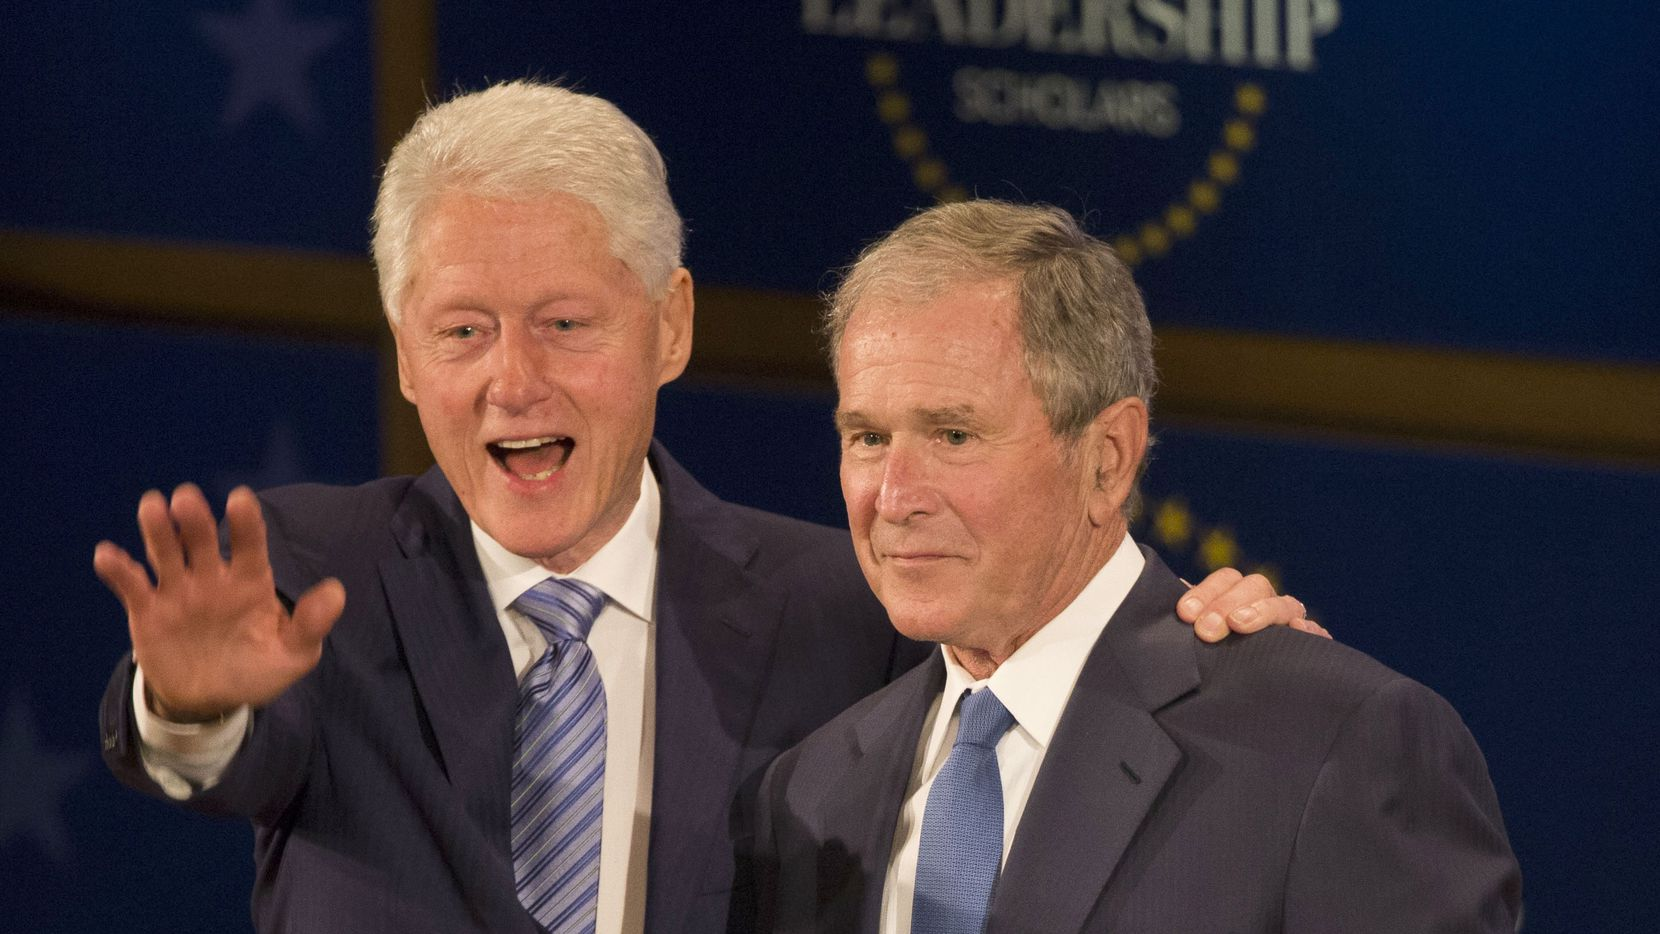 Former Presidents George W. Bush and Bill Clinton wave during the Presidential Leadership Scholars Graduation at the George W. Bush Presidential Center in Dallas.